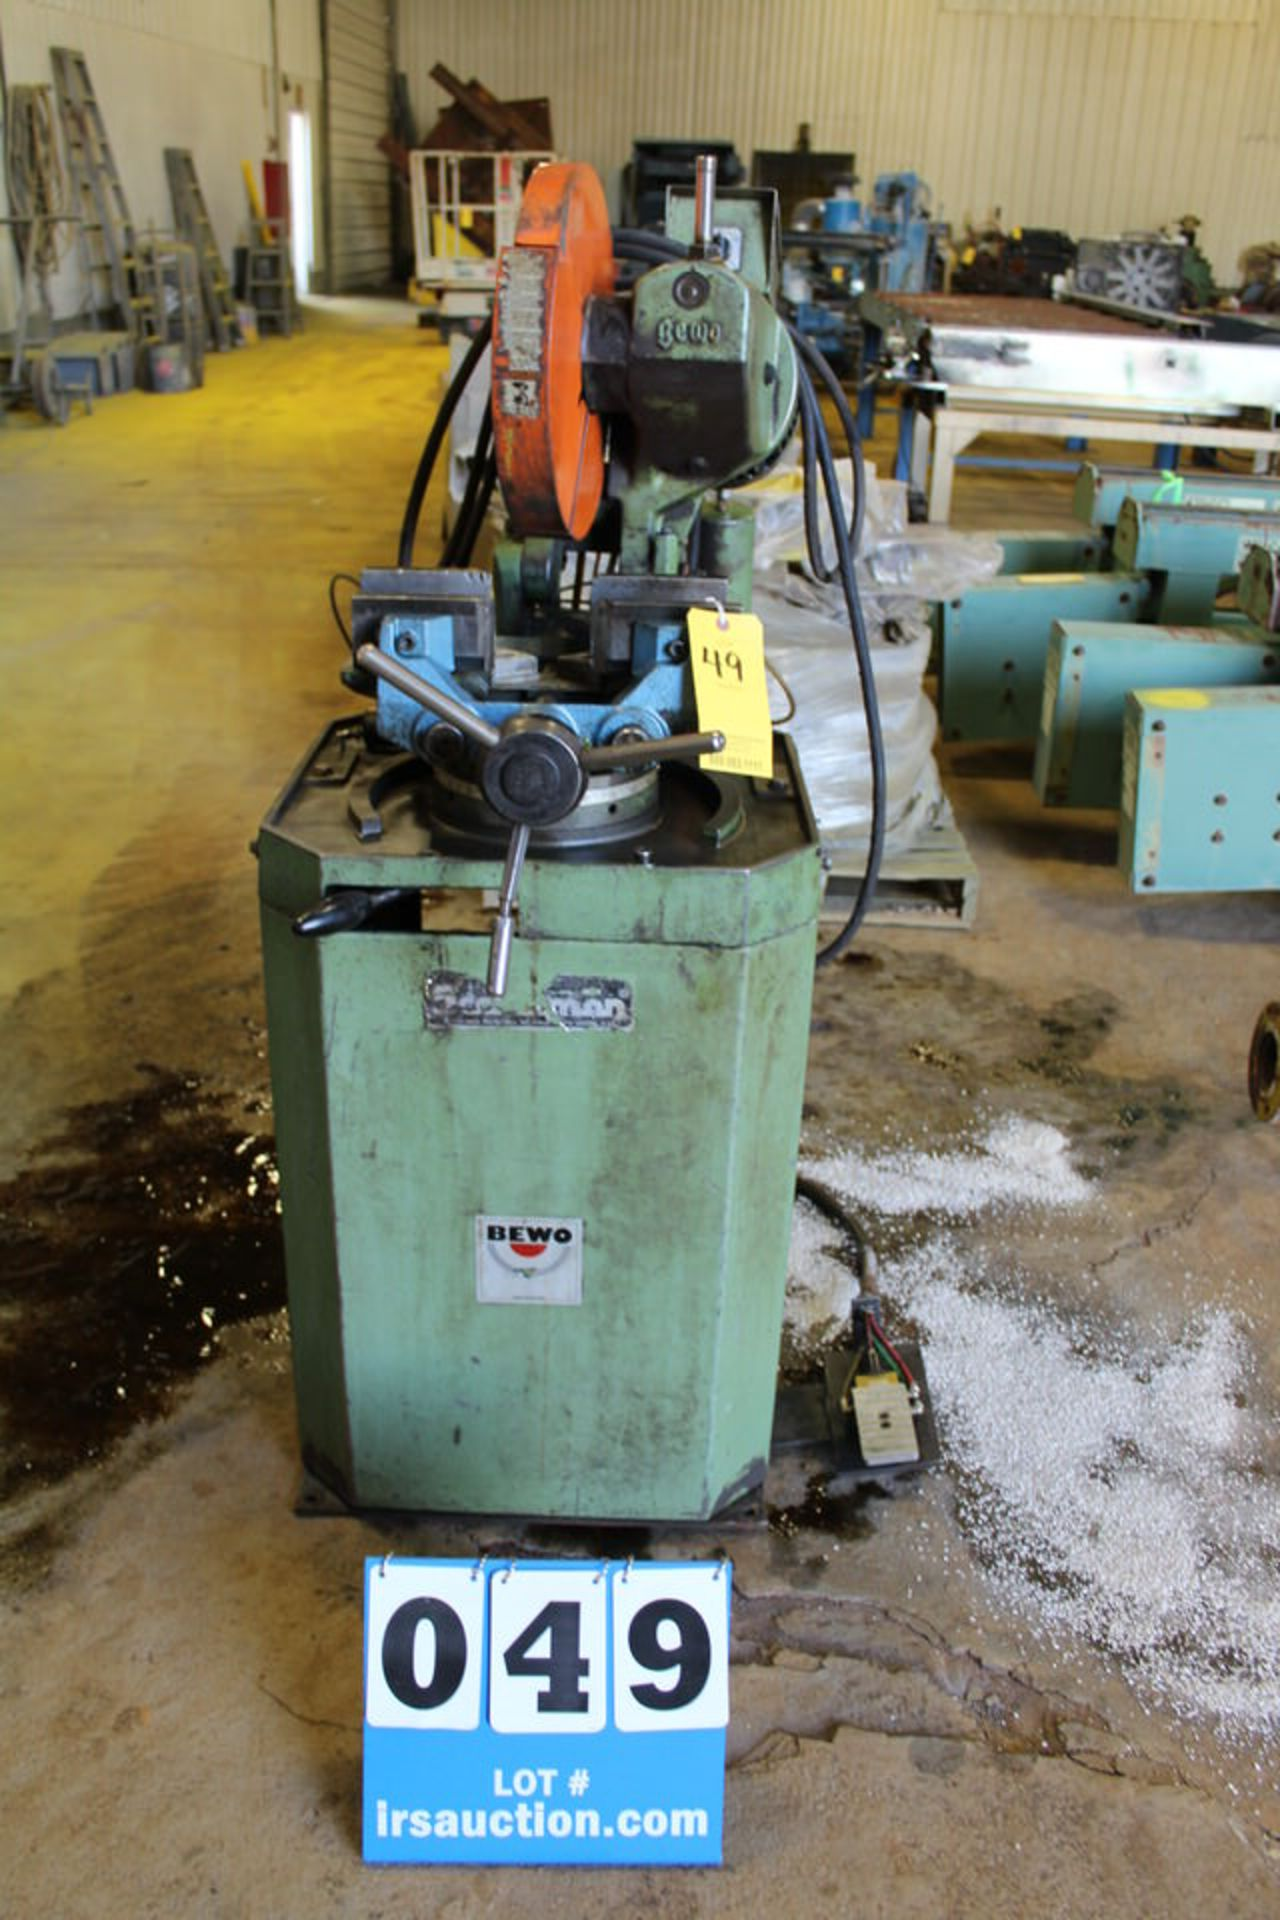 Lot 49 - SCOTCHMAN BEWO 350LG HYDRAULIC ABRASIVE CHOP SAW W/ CLAMPING ATTCHMNT, 4' INFEED & OUTFEED